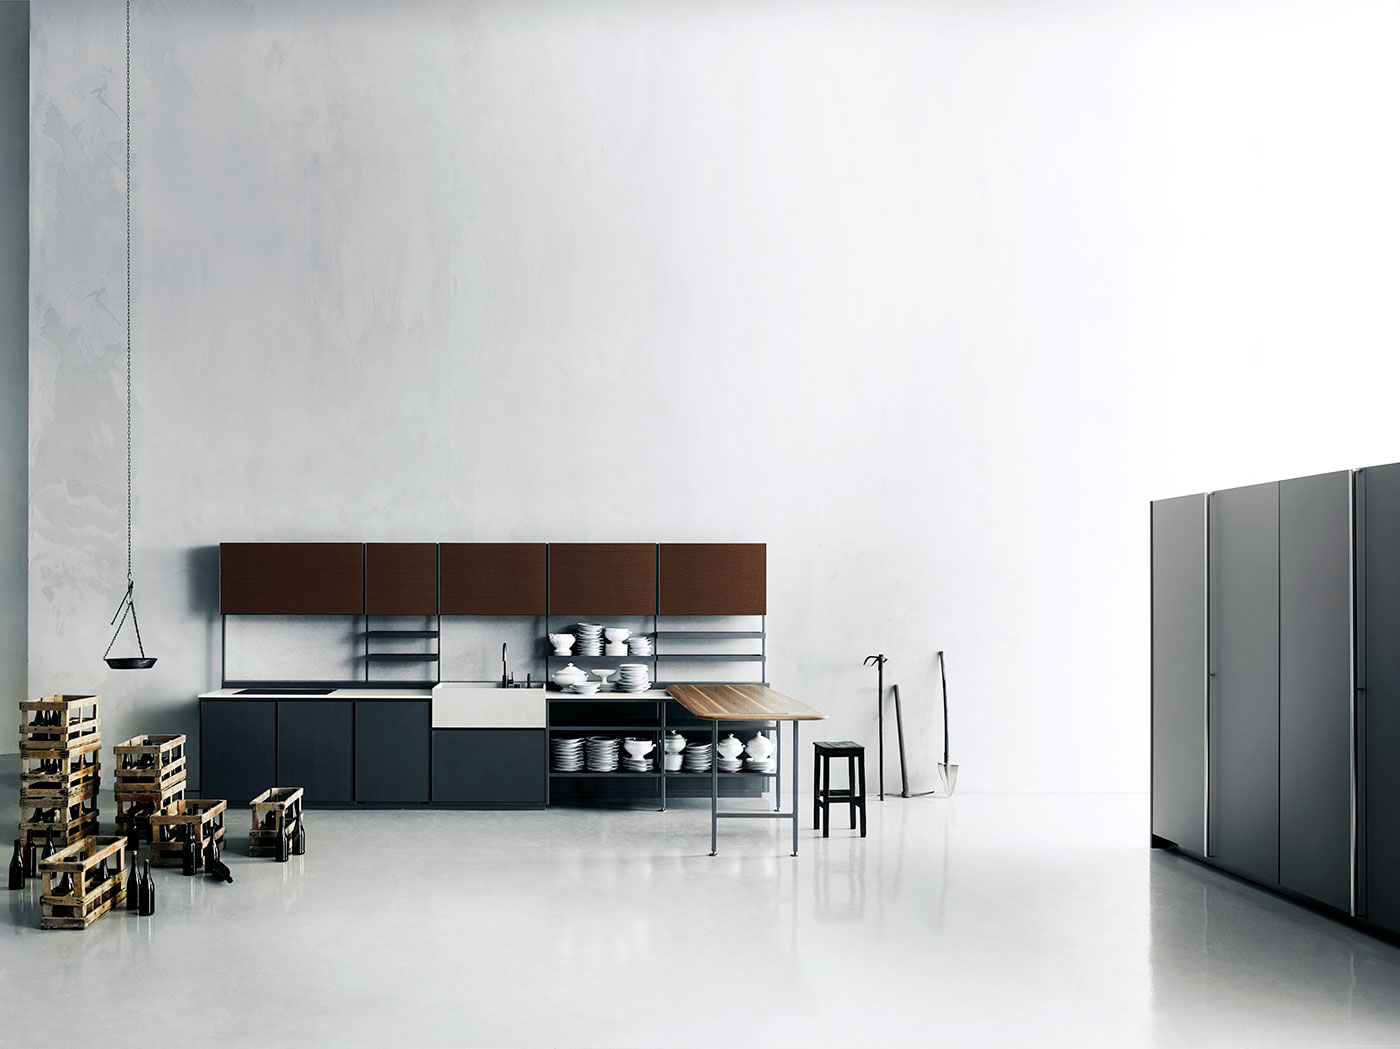 Obegi Home Boffi Salinas Kitchen and Wall Units and Hide By Tommasosartori 2 High